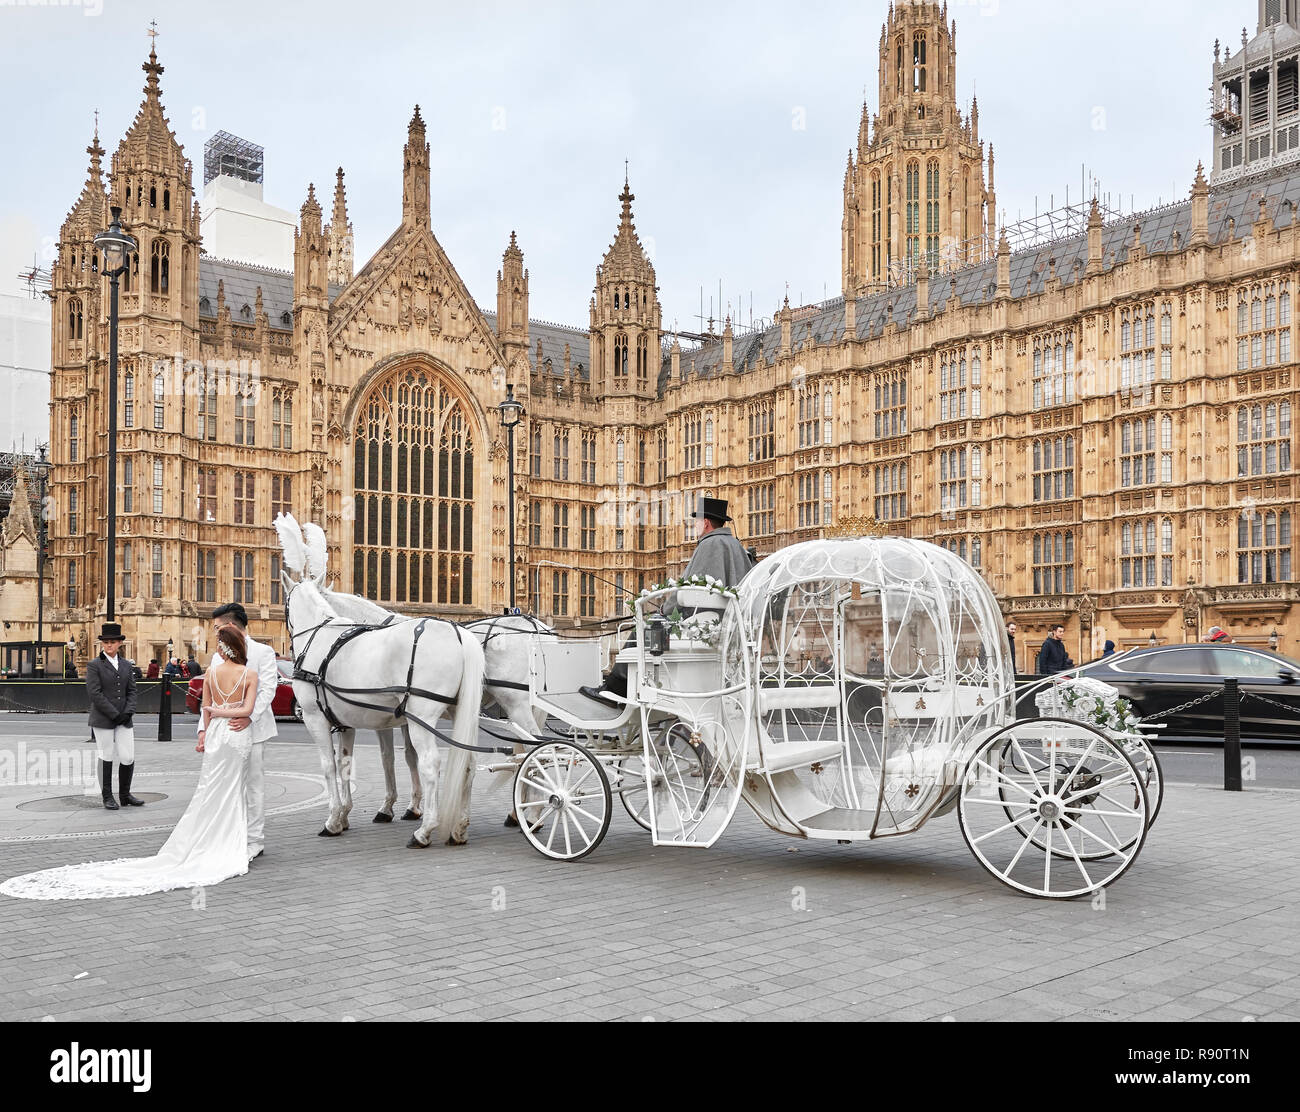 Chinese Married Couple Dressed In White Pose For Fairy Tale Wedding Photos With White Carriage Drawn By Two White Horses Outside Parliament London Stock Photo Alamy